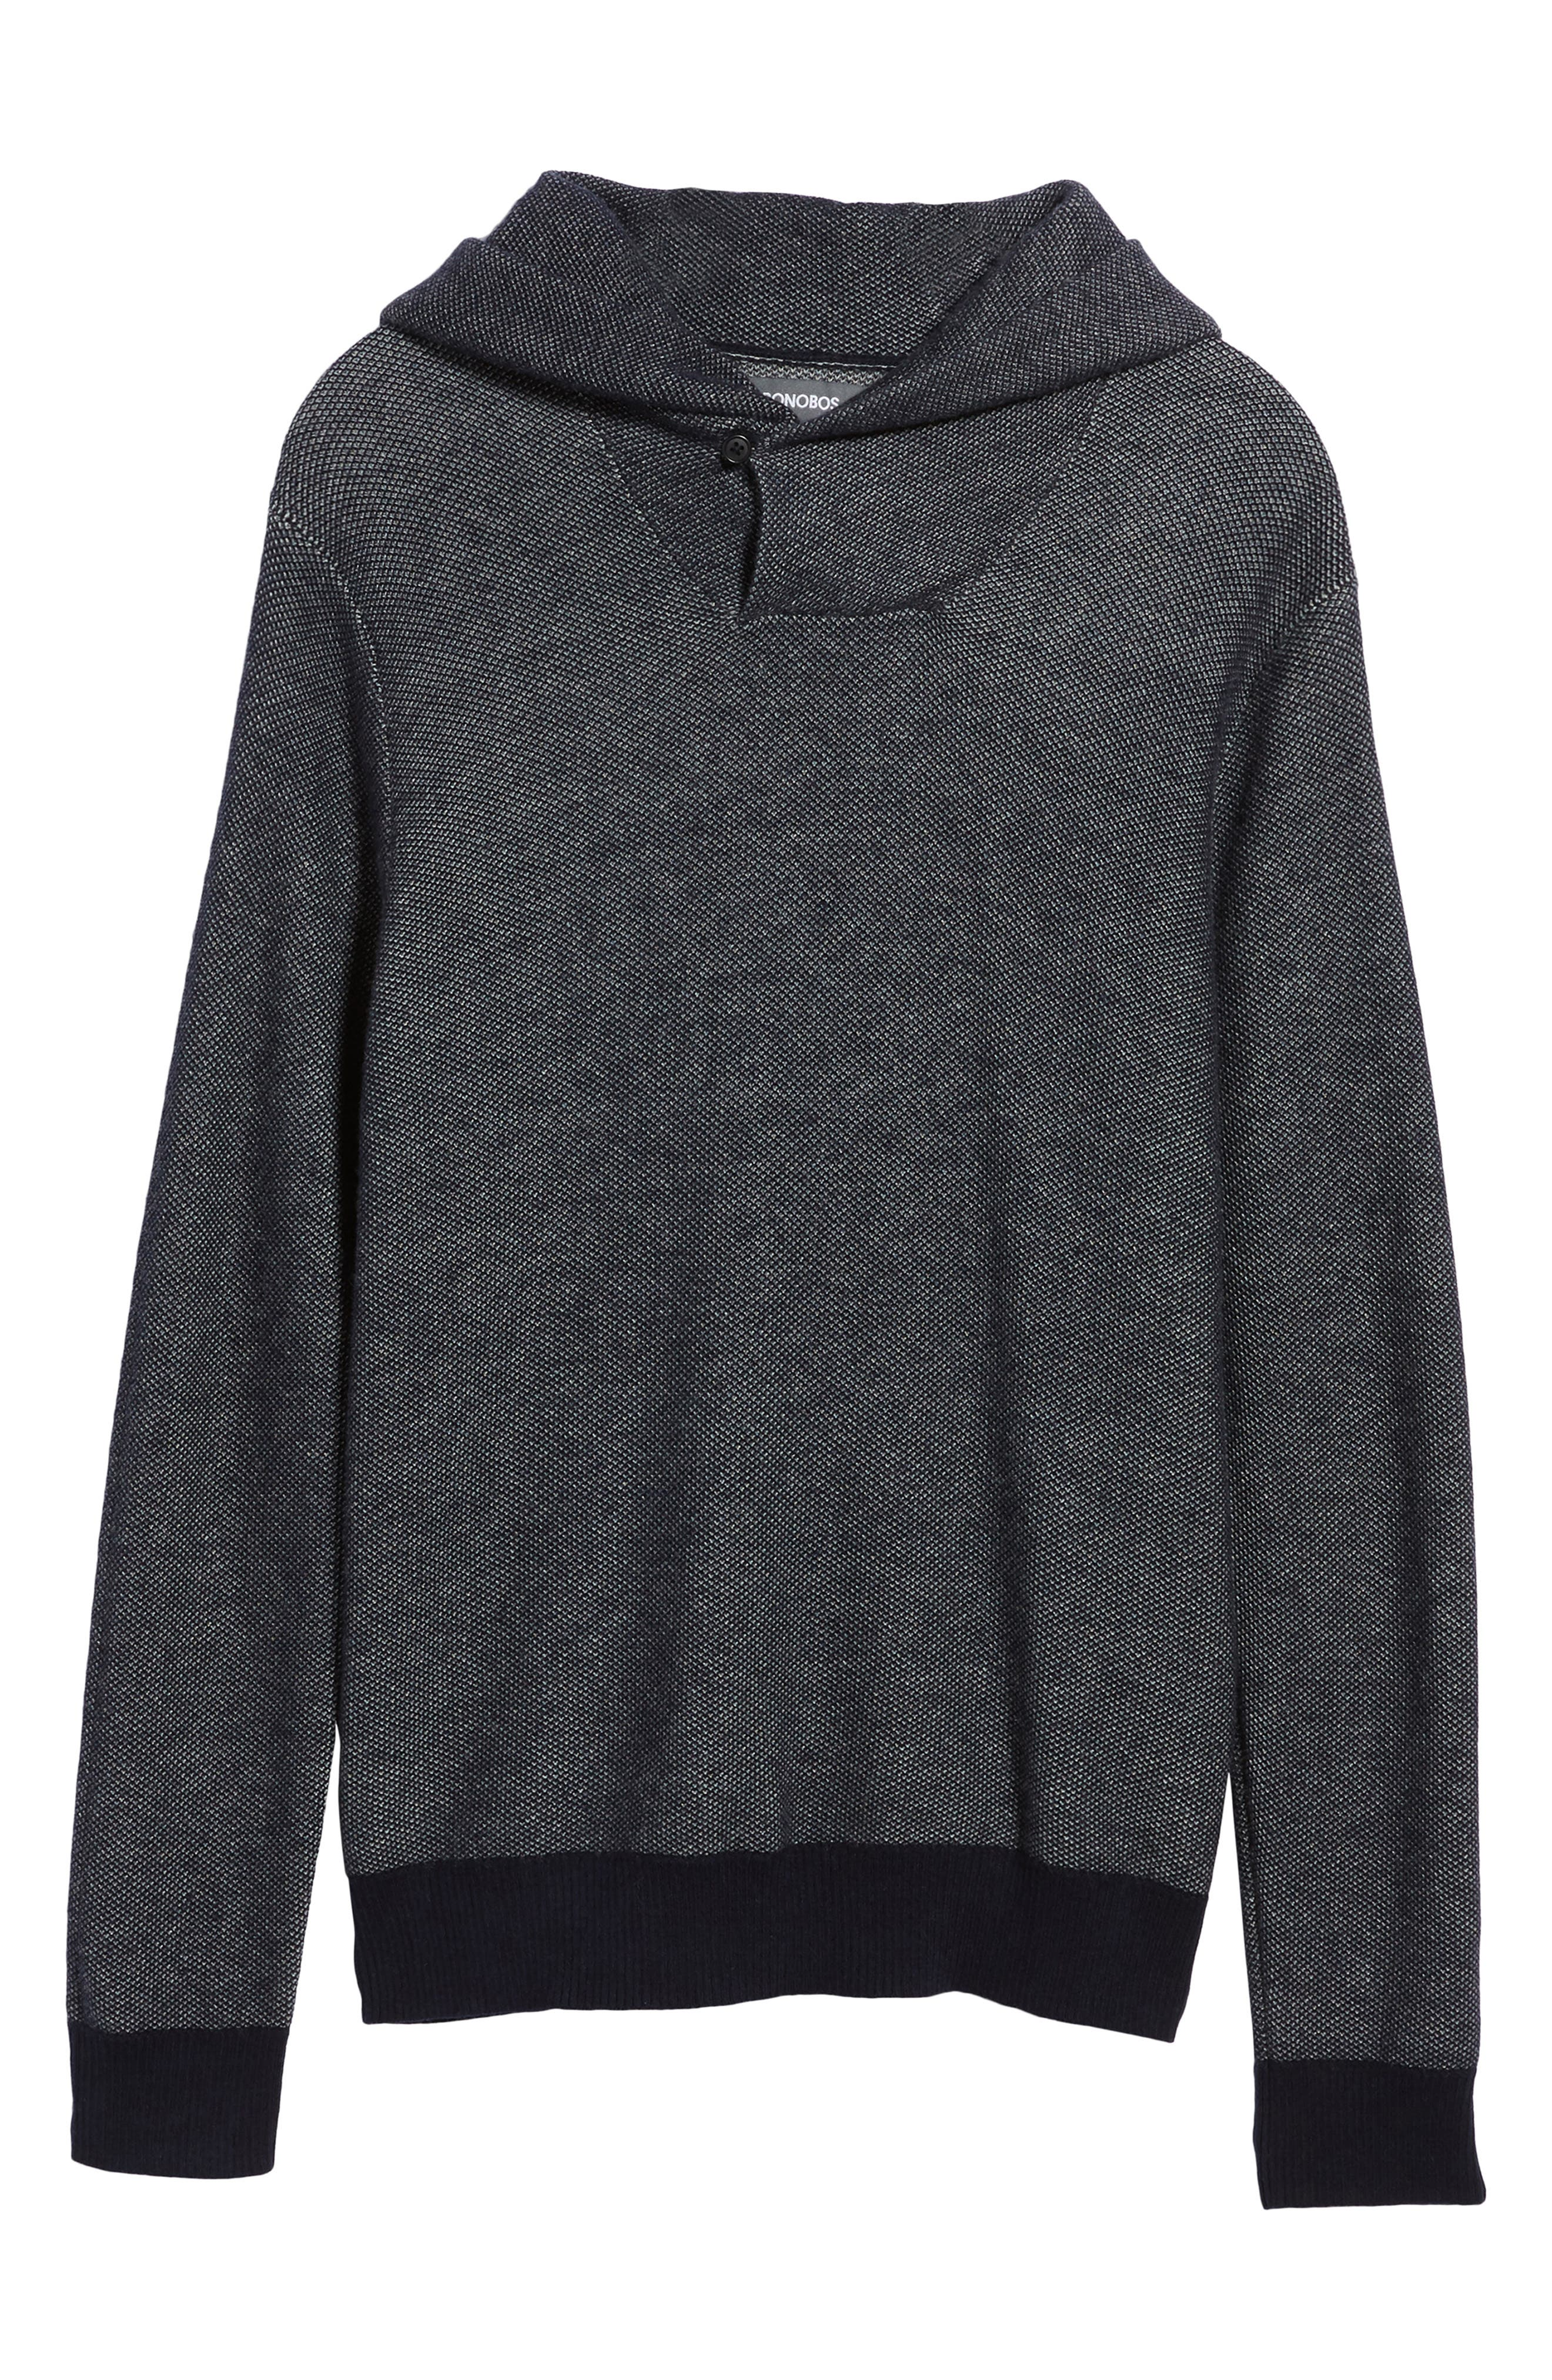 Cotton & Cashmere Hoodie,                             Alternate thumbnail 6, color,                             Midnight Blue/ Heather Silver